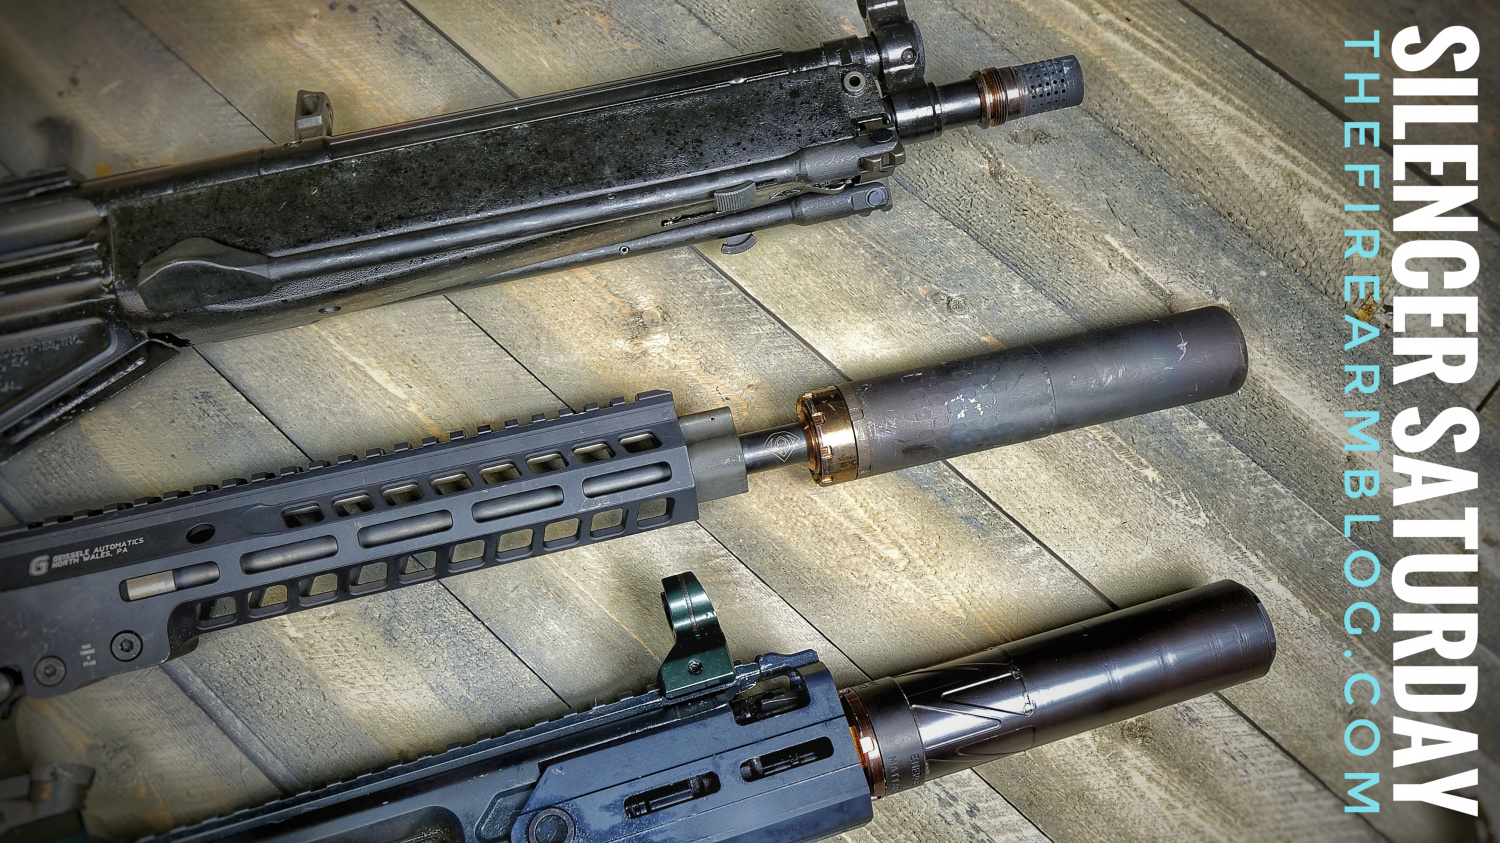 Silencer Saturday 66 Vox Versus Saker Decibels For Subs And Supers The Firearm Blog